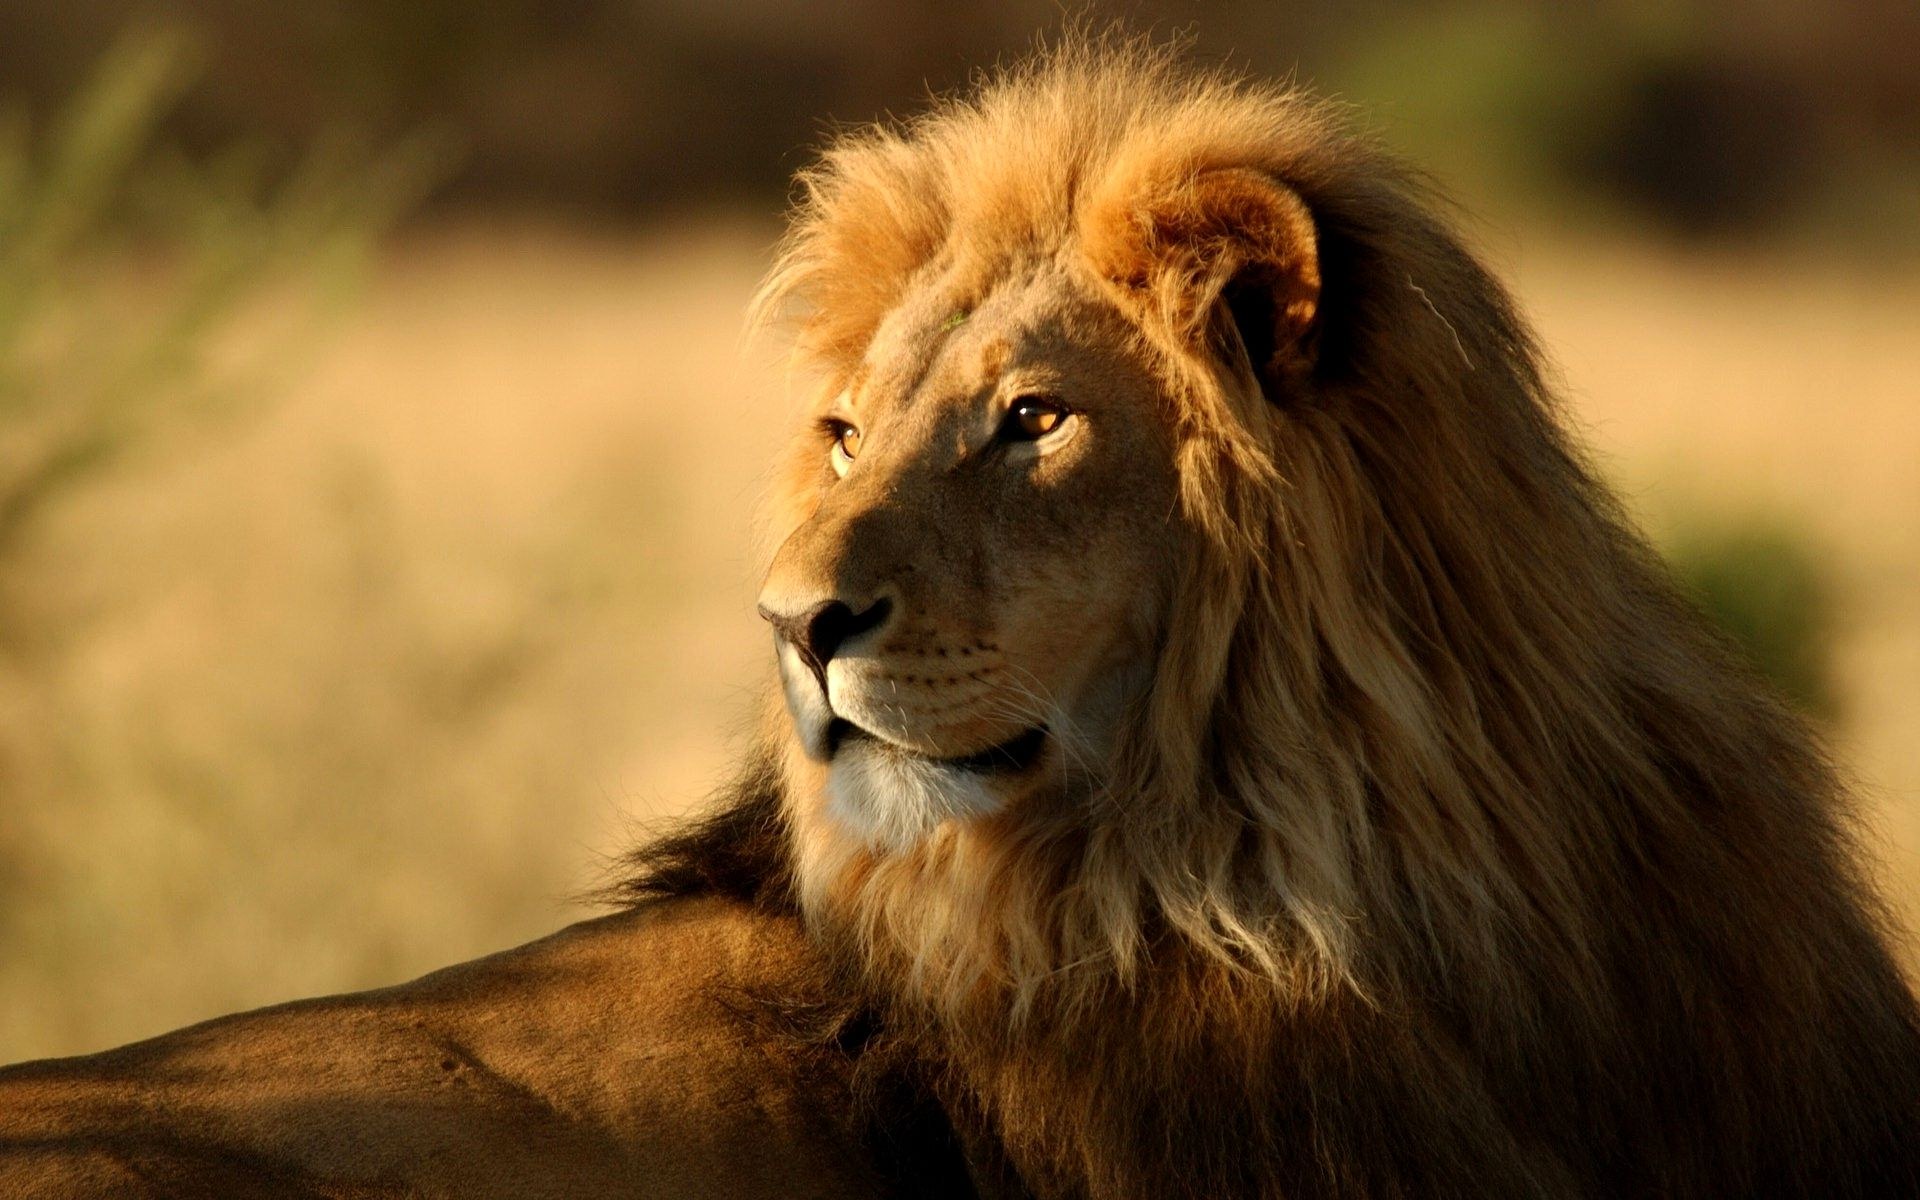 10 different types of lions with fact and pictures lion hd wallpapers lion find best latest hd wallpapers lion in hd for your pc desktop background mobile phones voltagebd Gallery